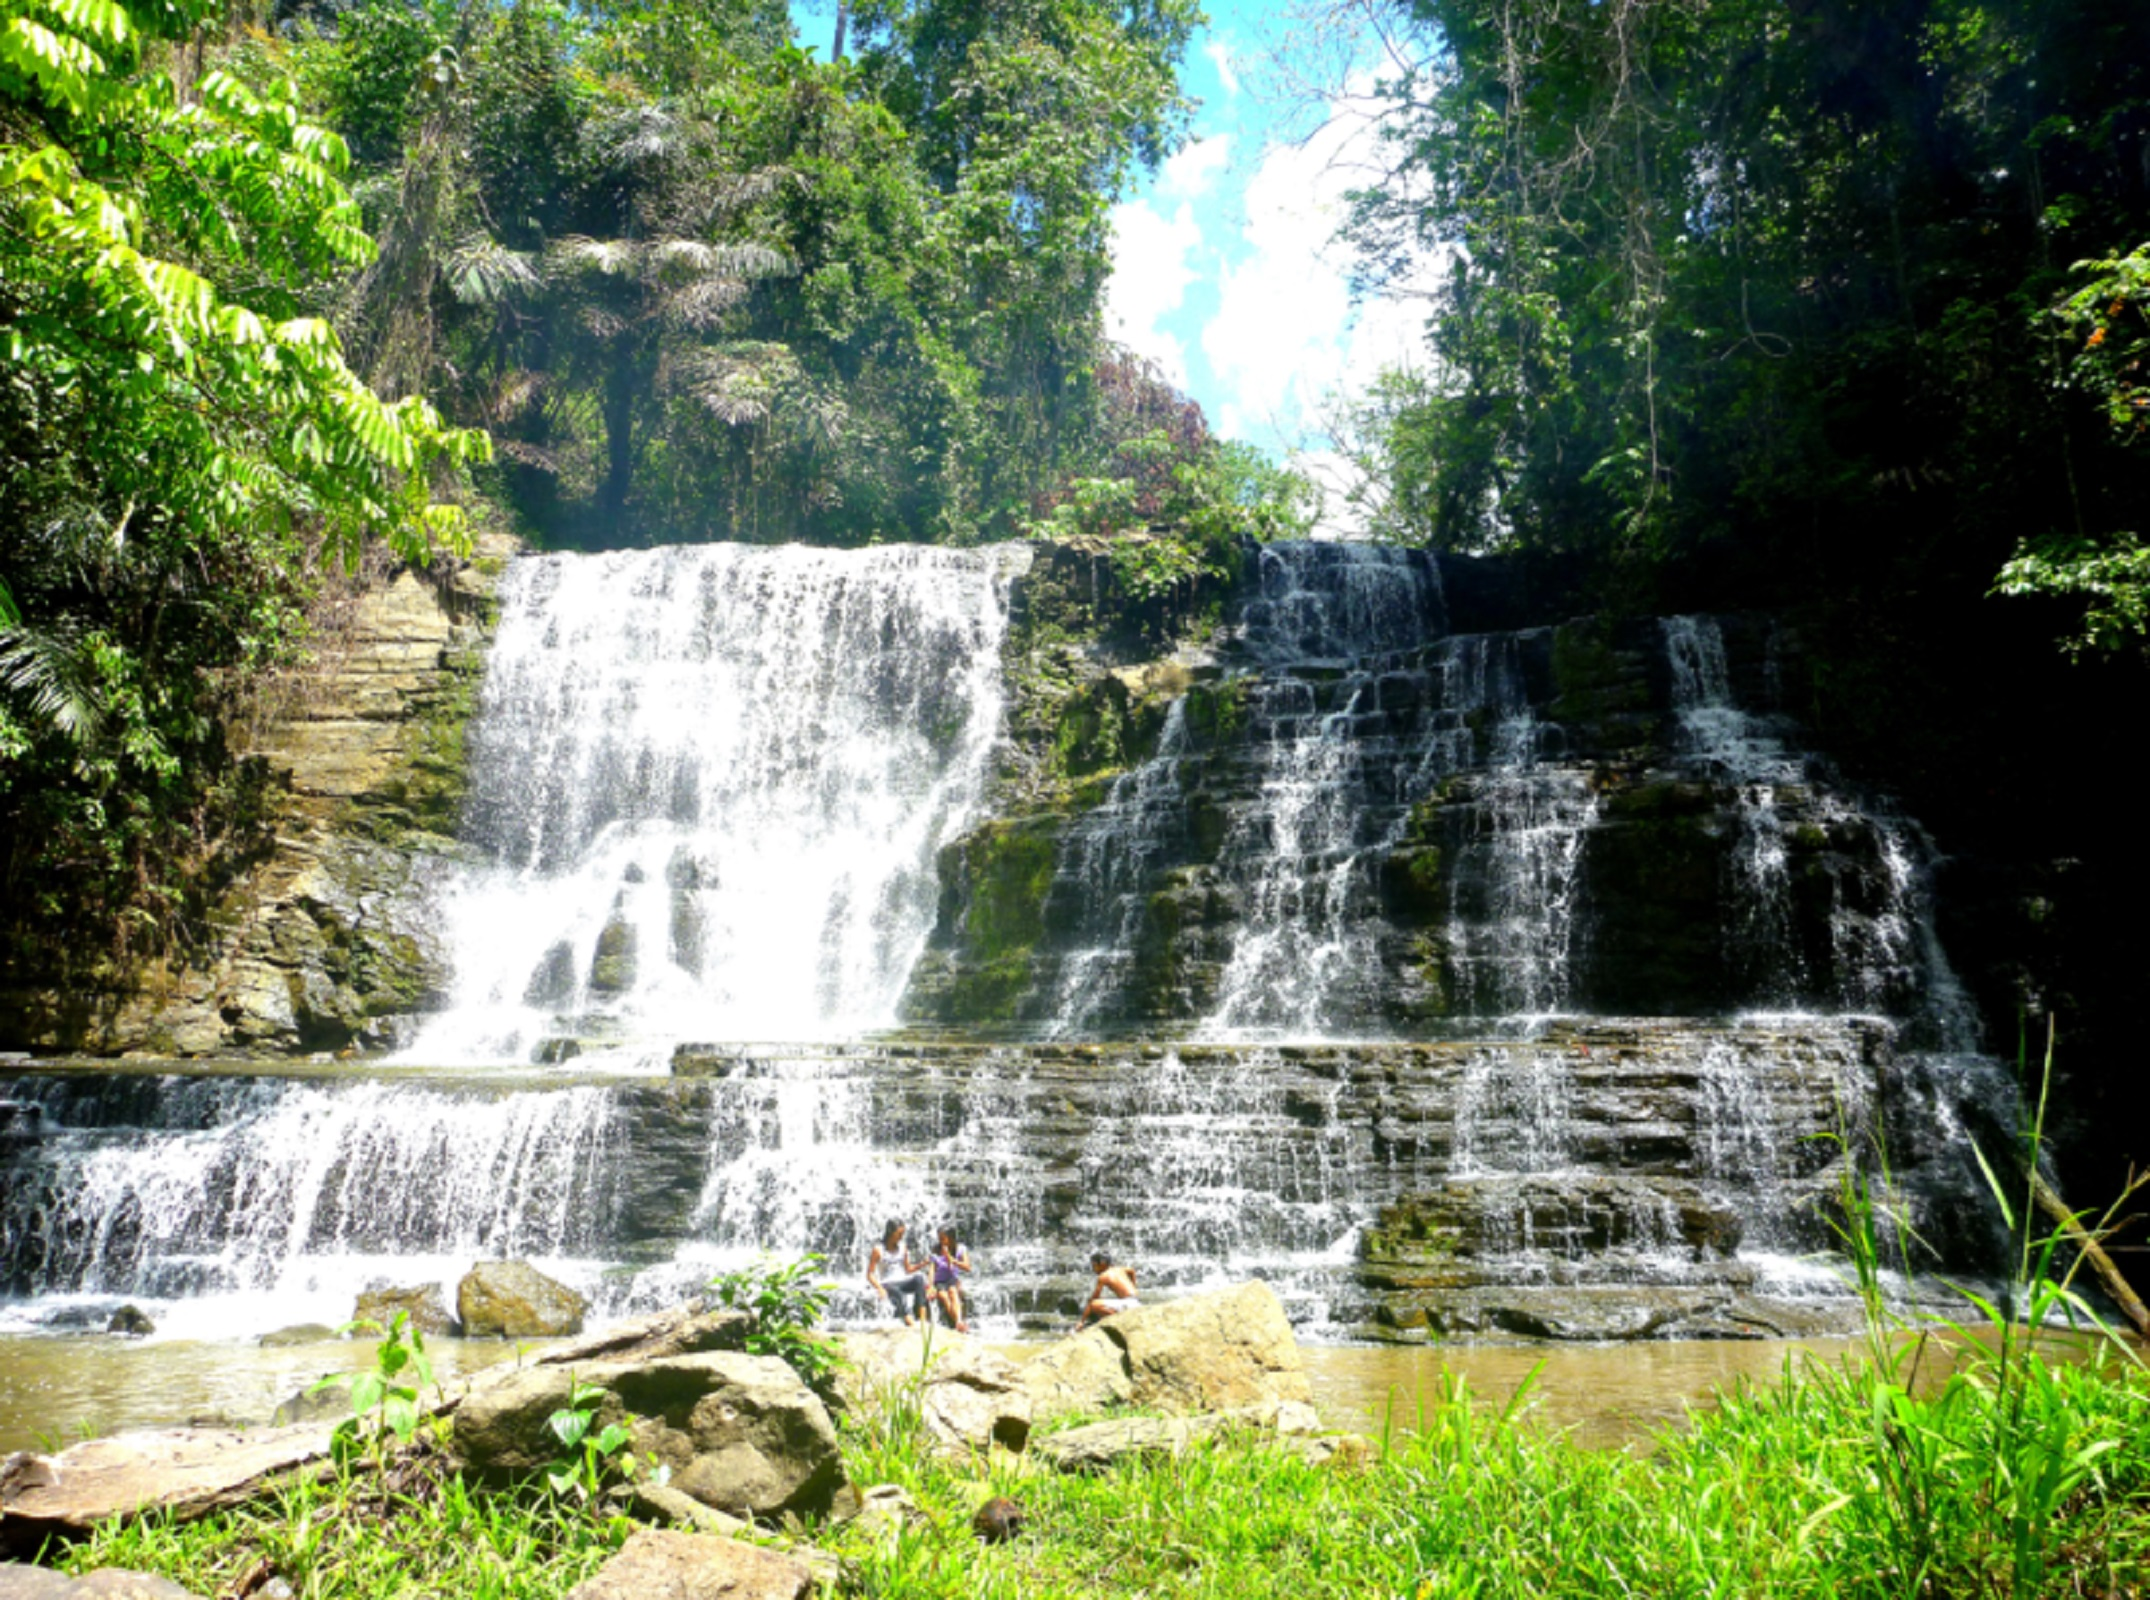 Merloquet Falls Zamboanga Eco Tour | With Lunch and Transfers